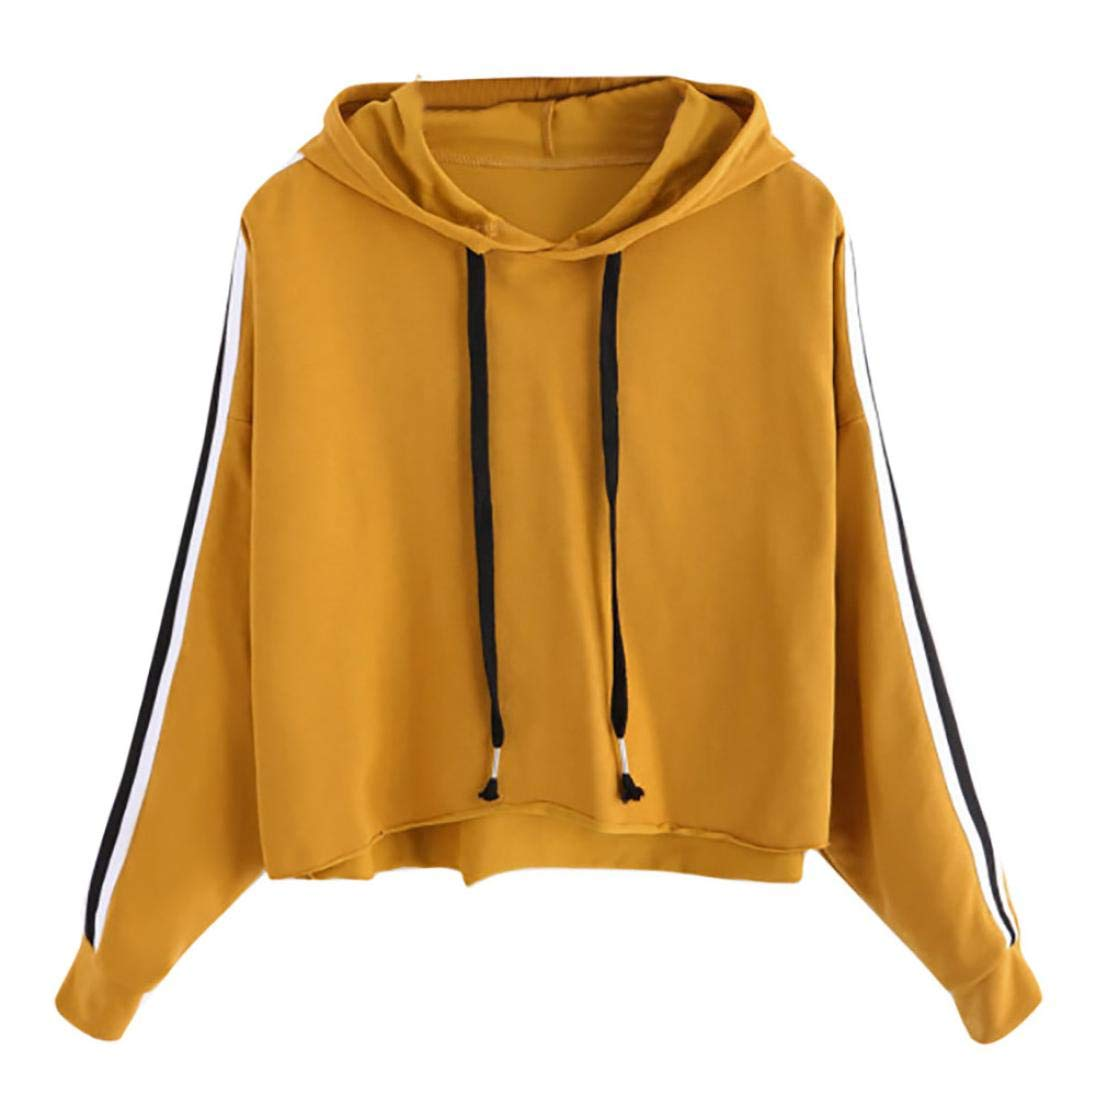 ZTY66 Women's Casual Long Sleeve Striped Hoodie Sweatshirt Jumper Hooded Pullover Tops Blouse (XL, Yellow)